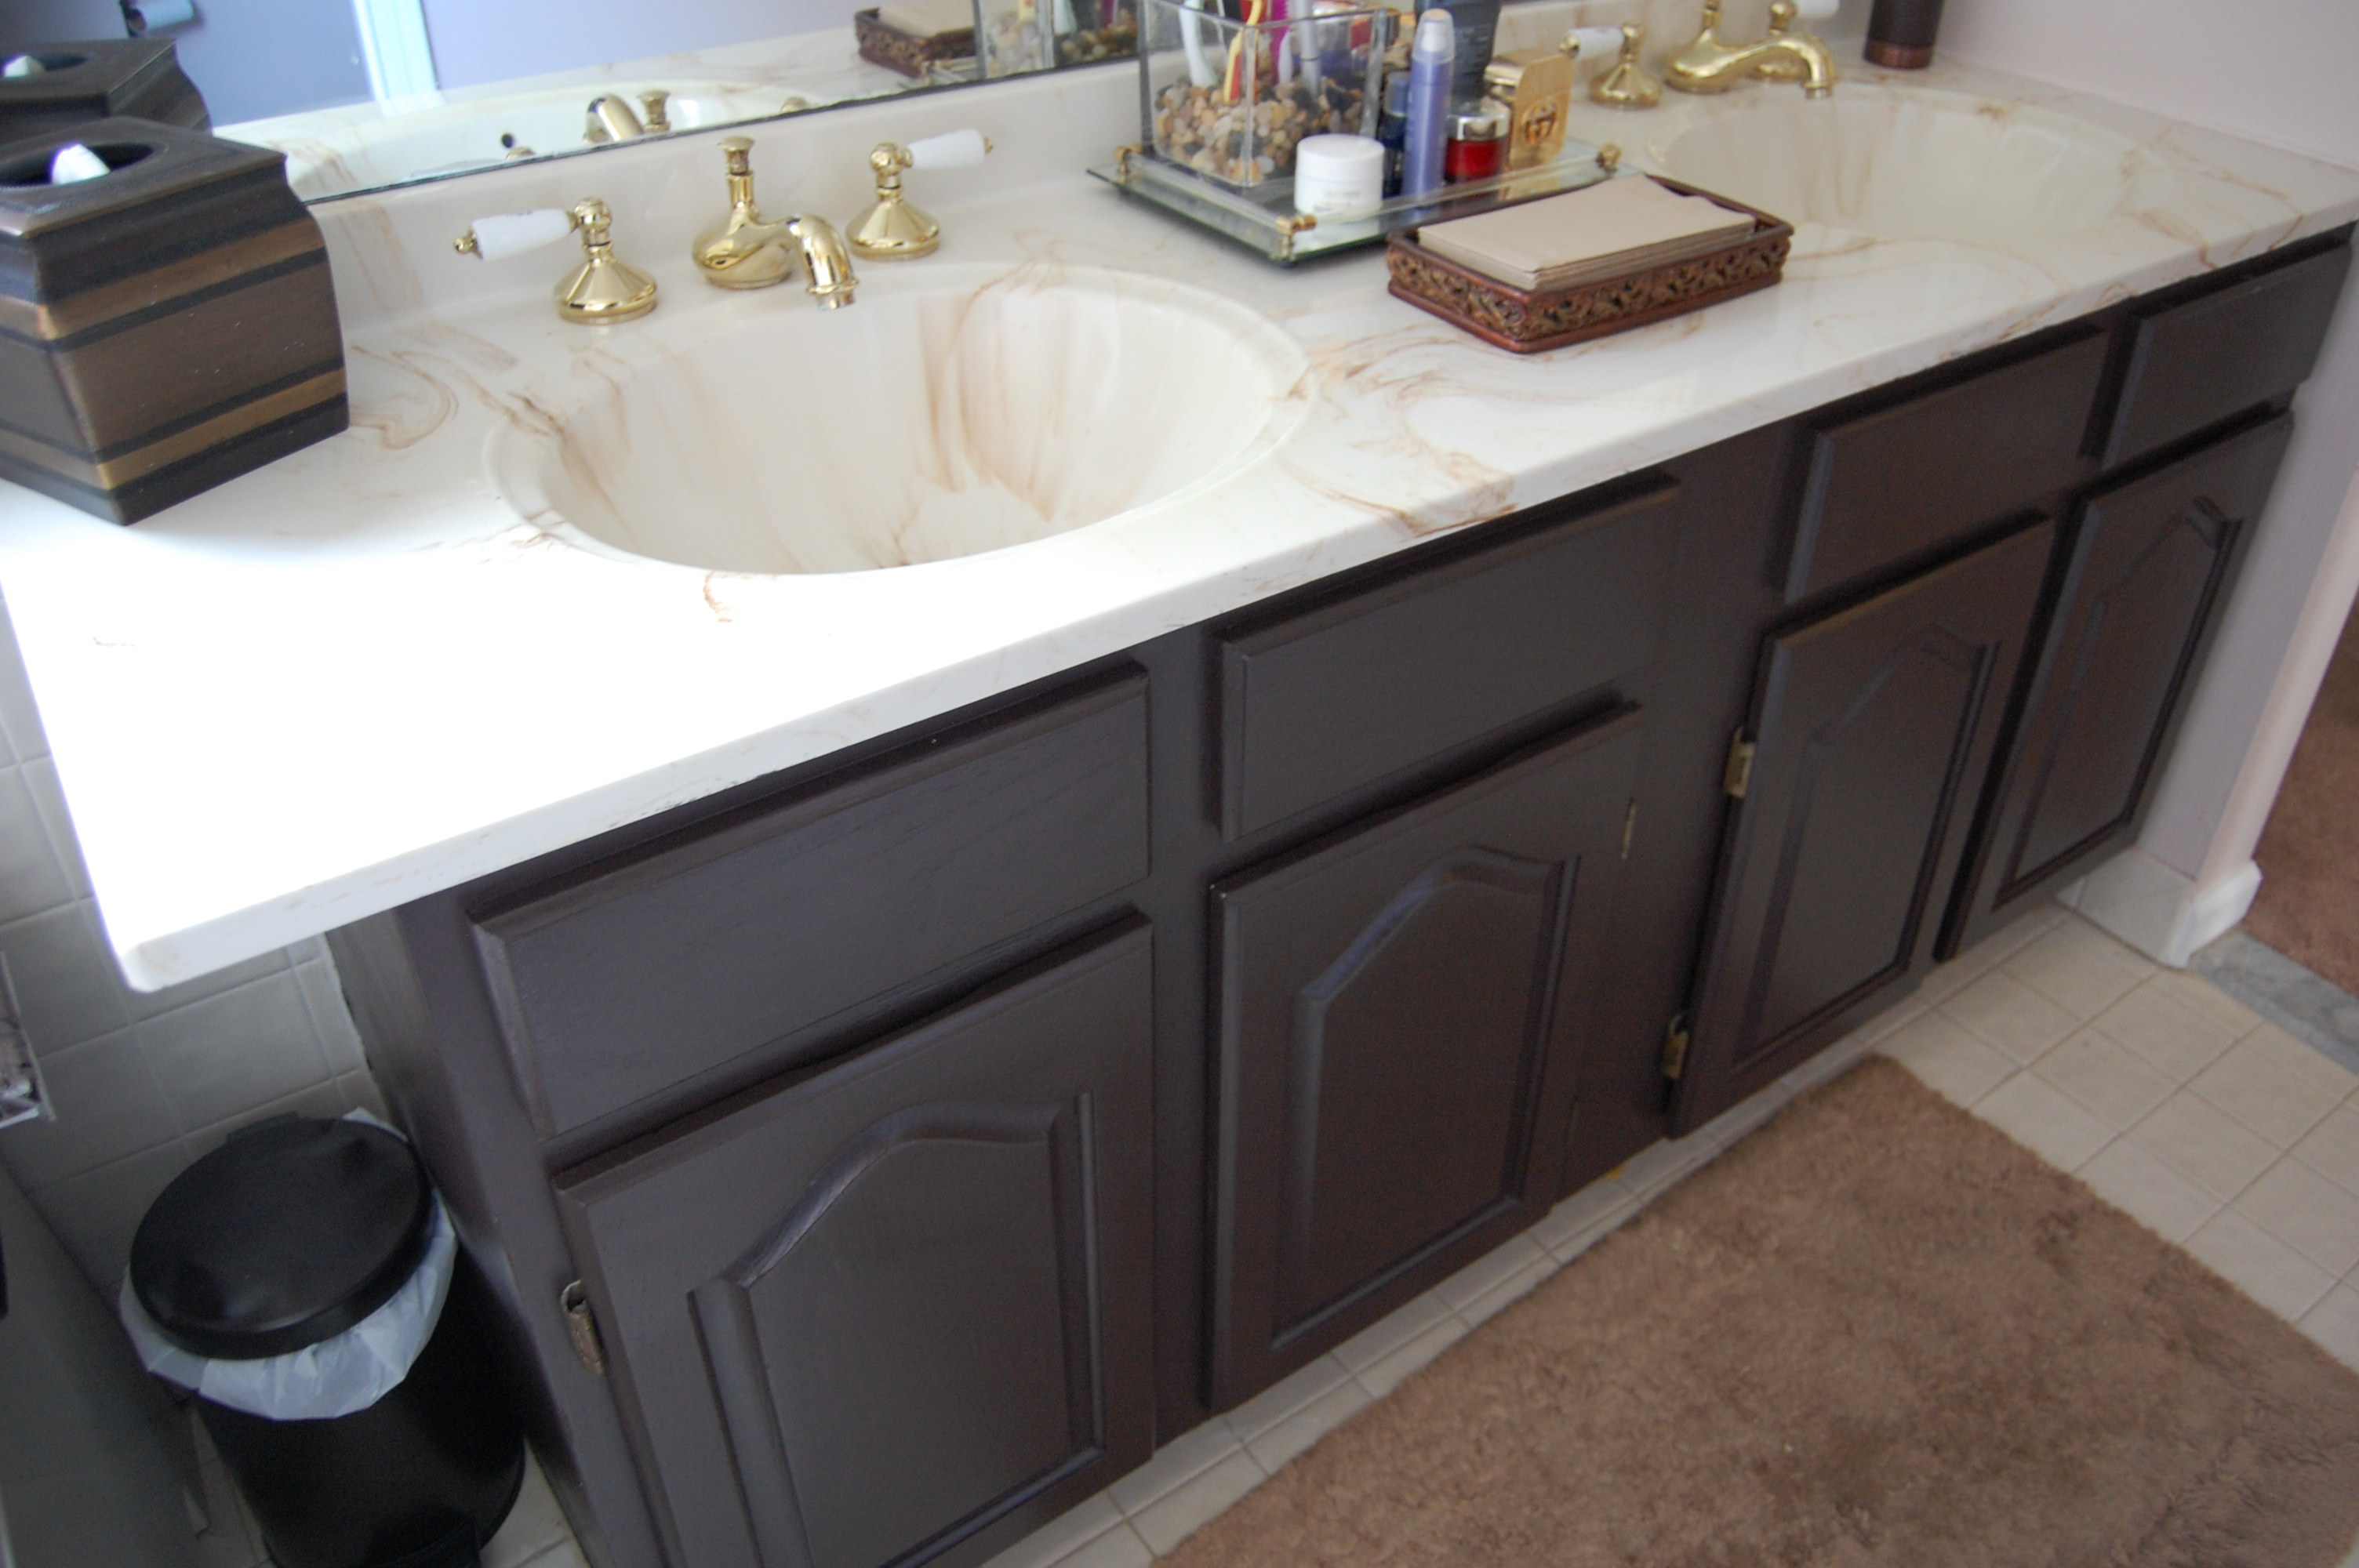 How to paint bathroom cabinets - Have You Painted